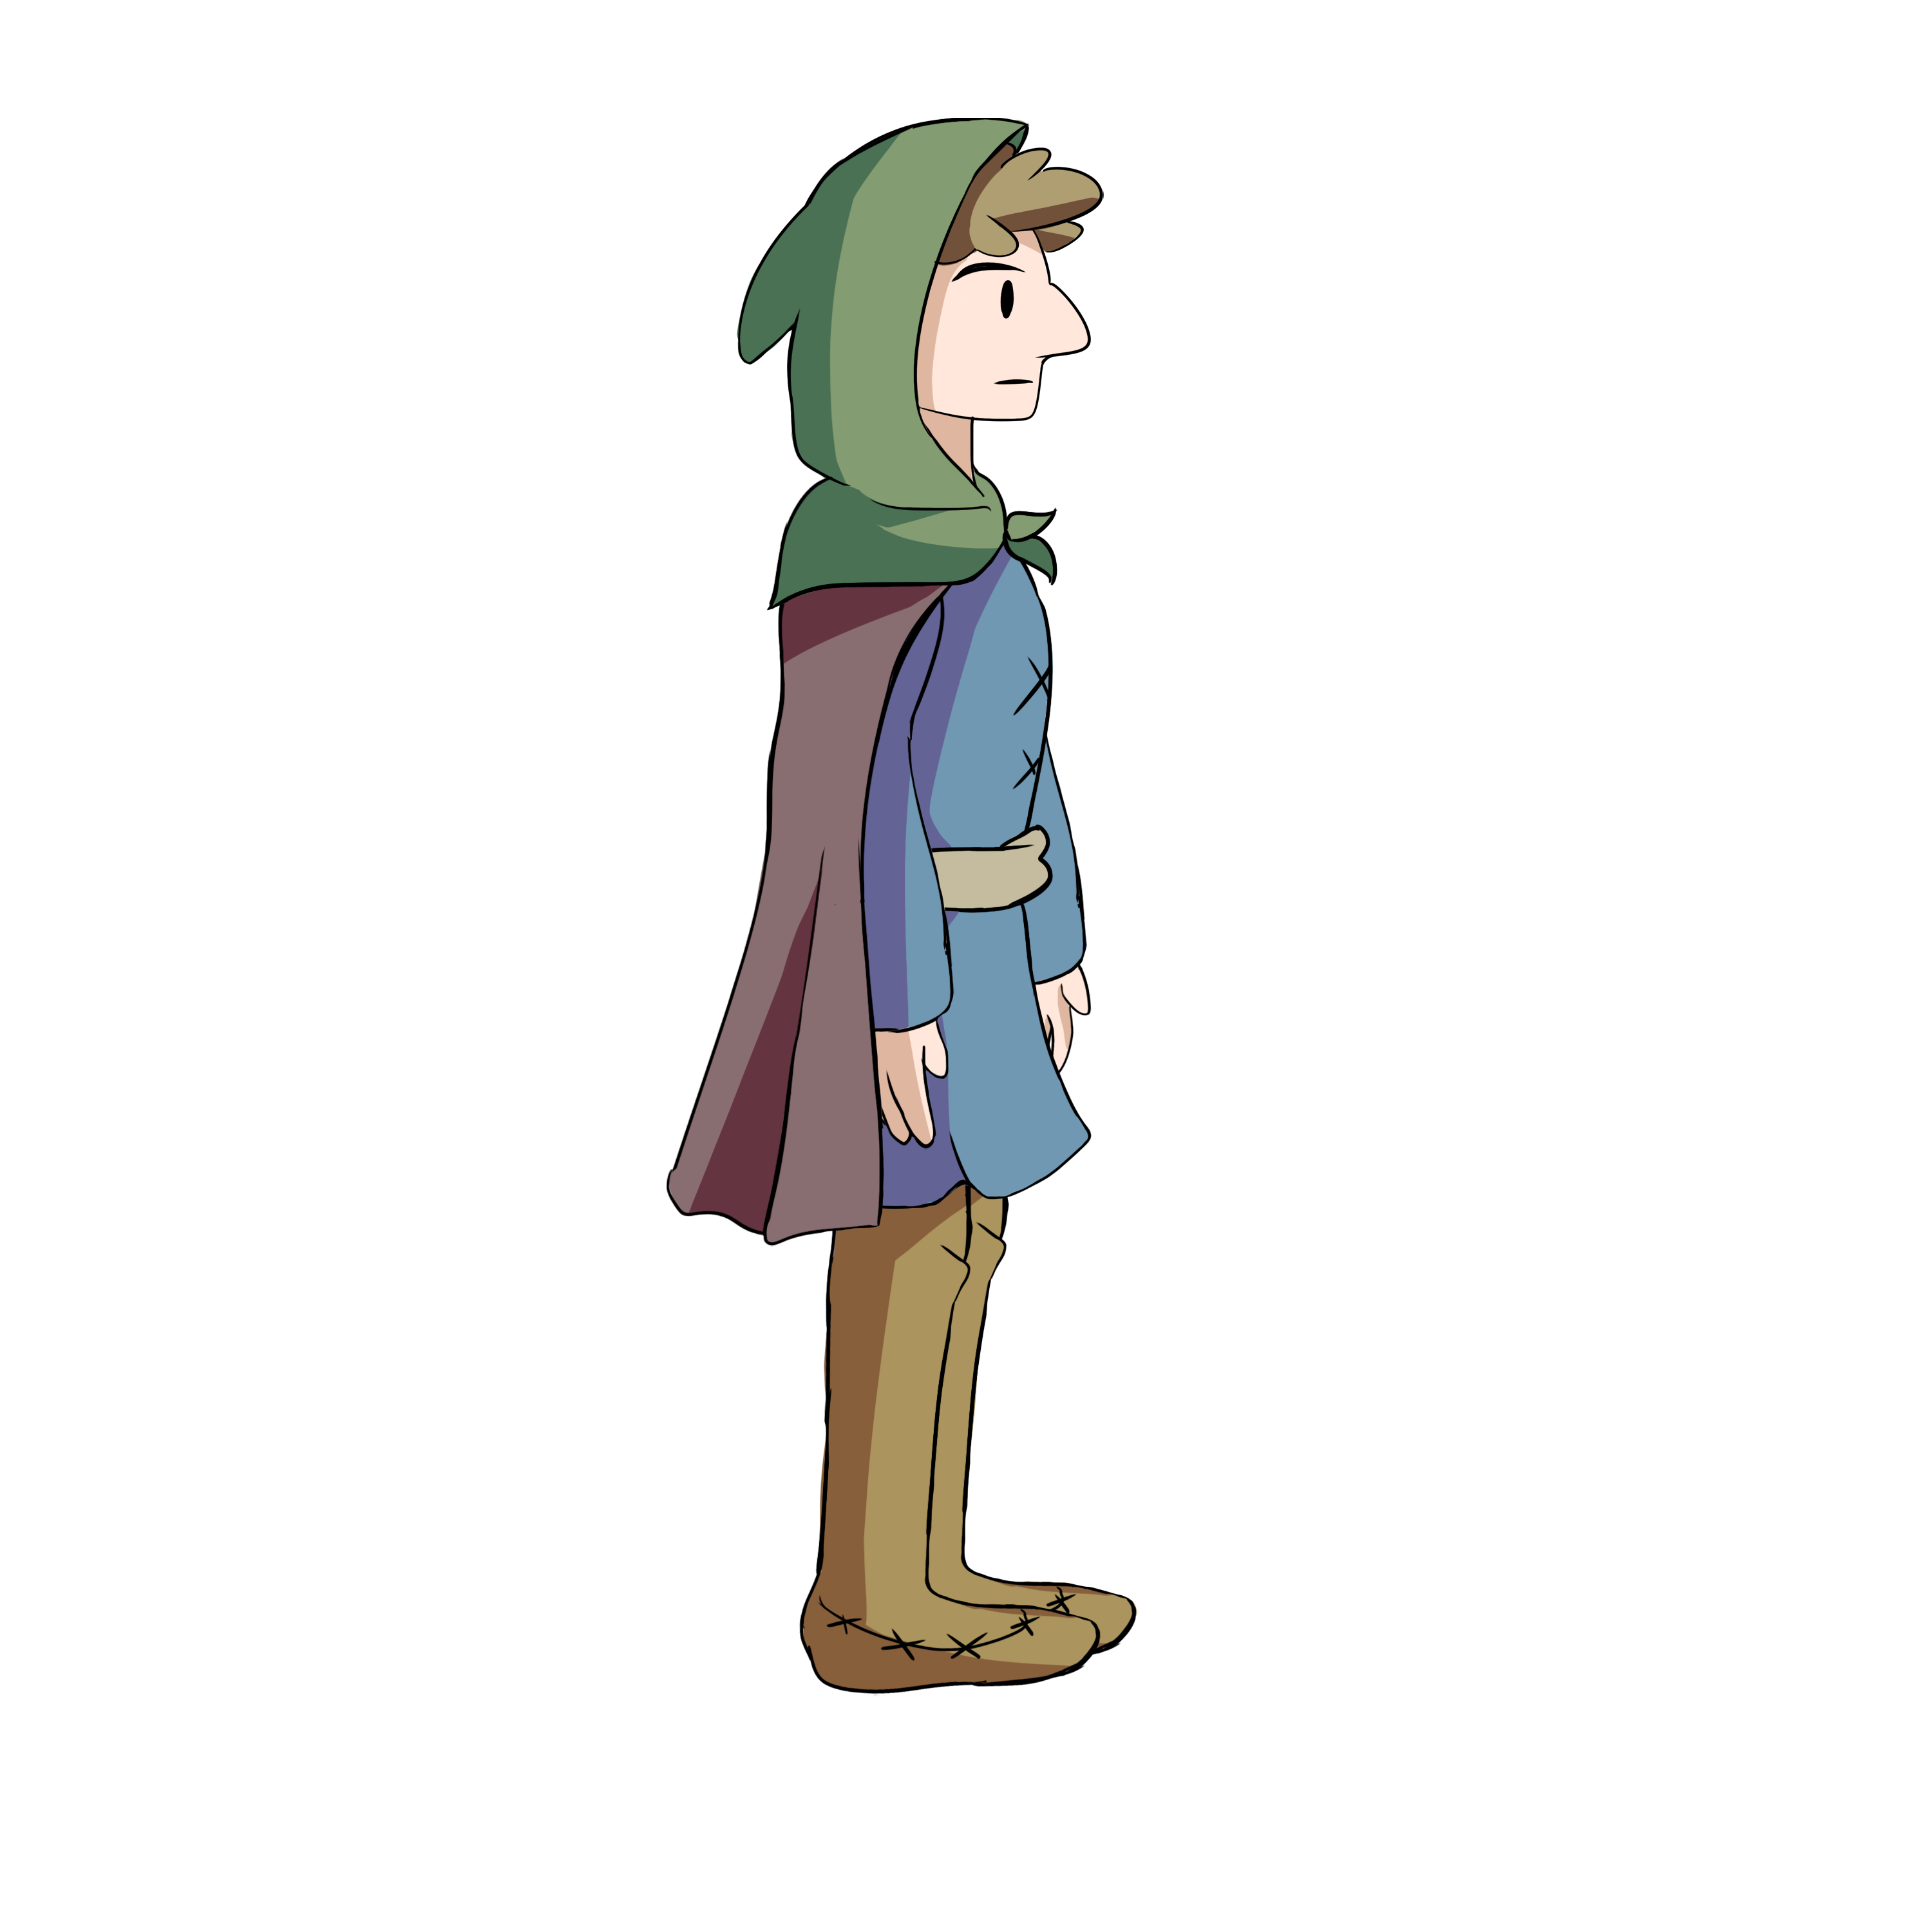 Our Playable character